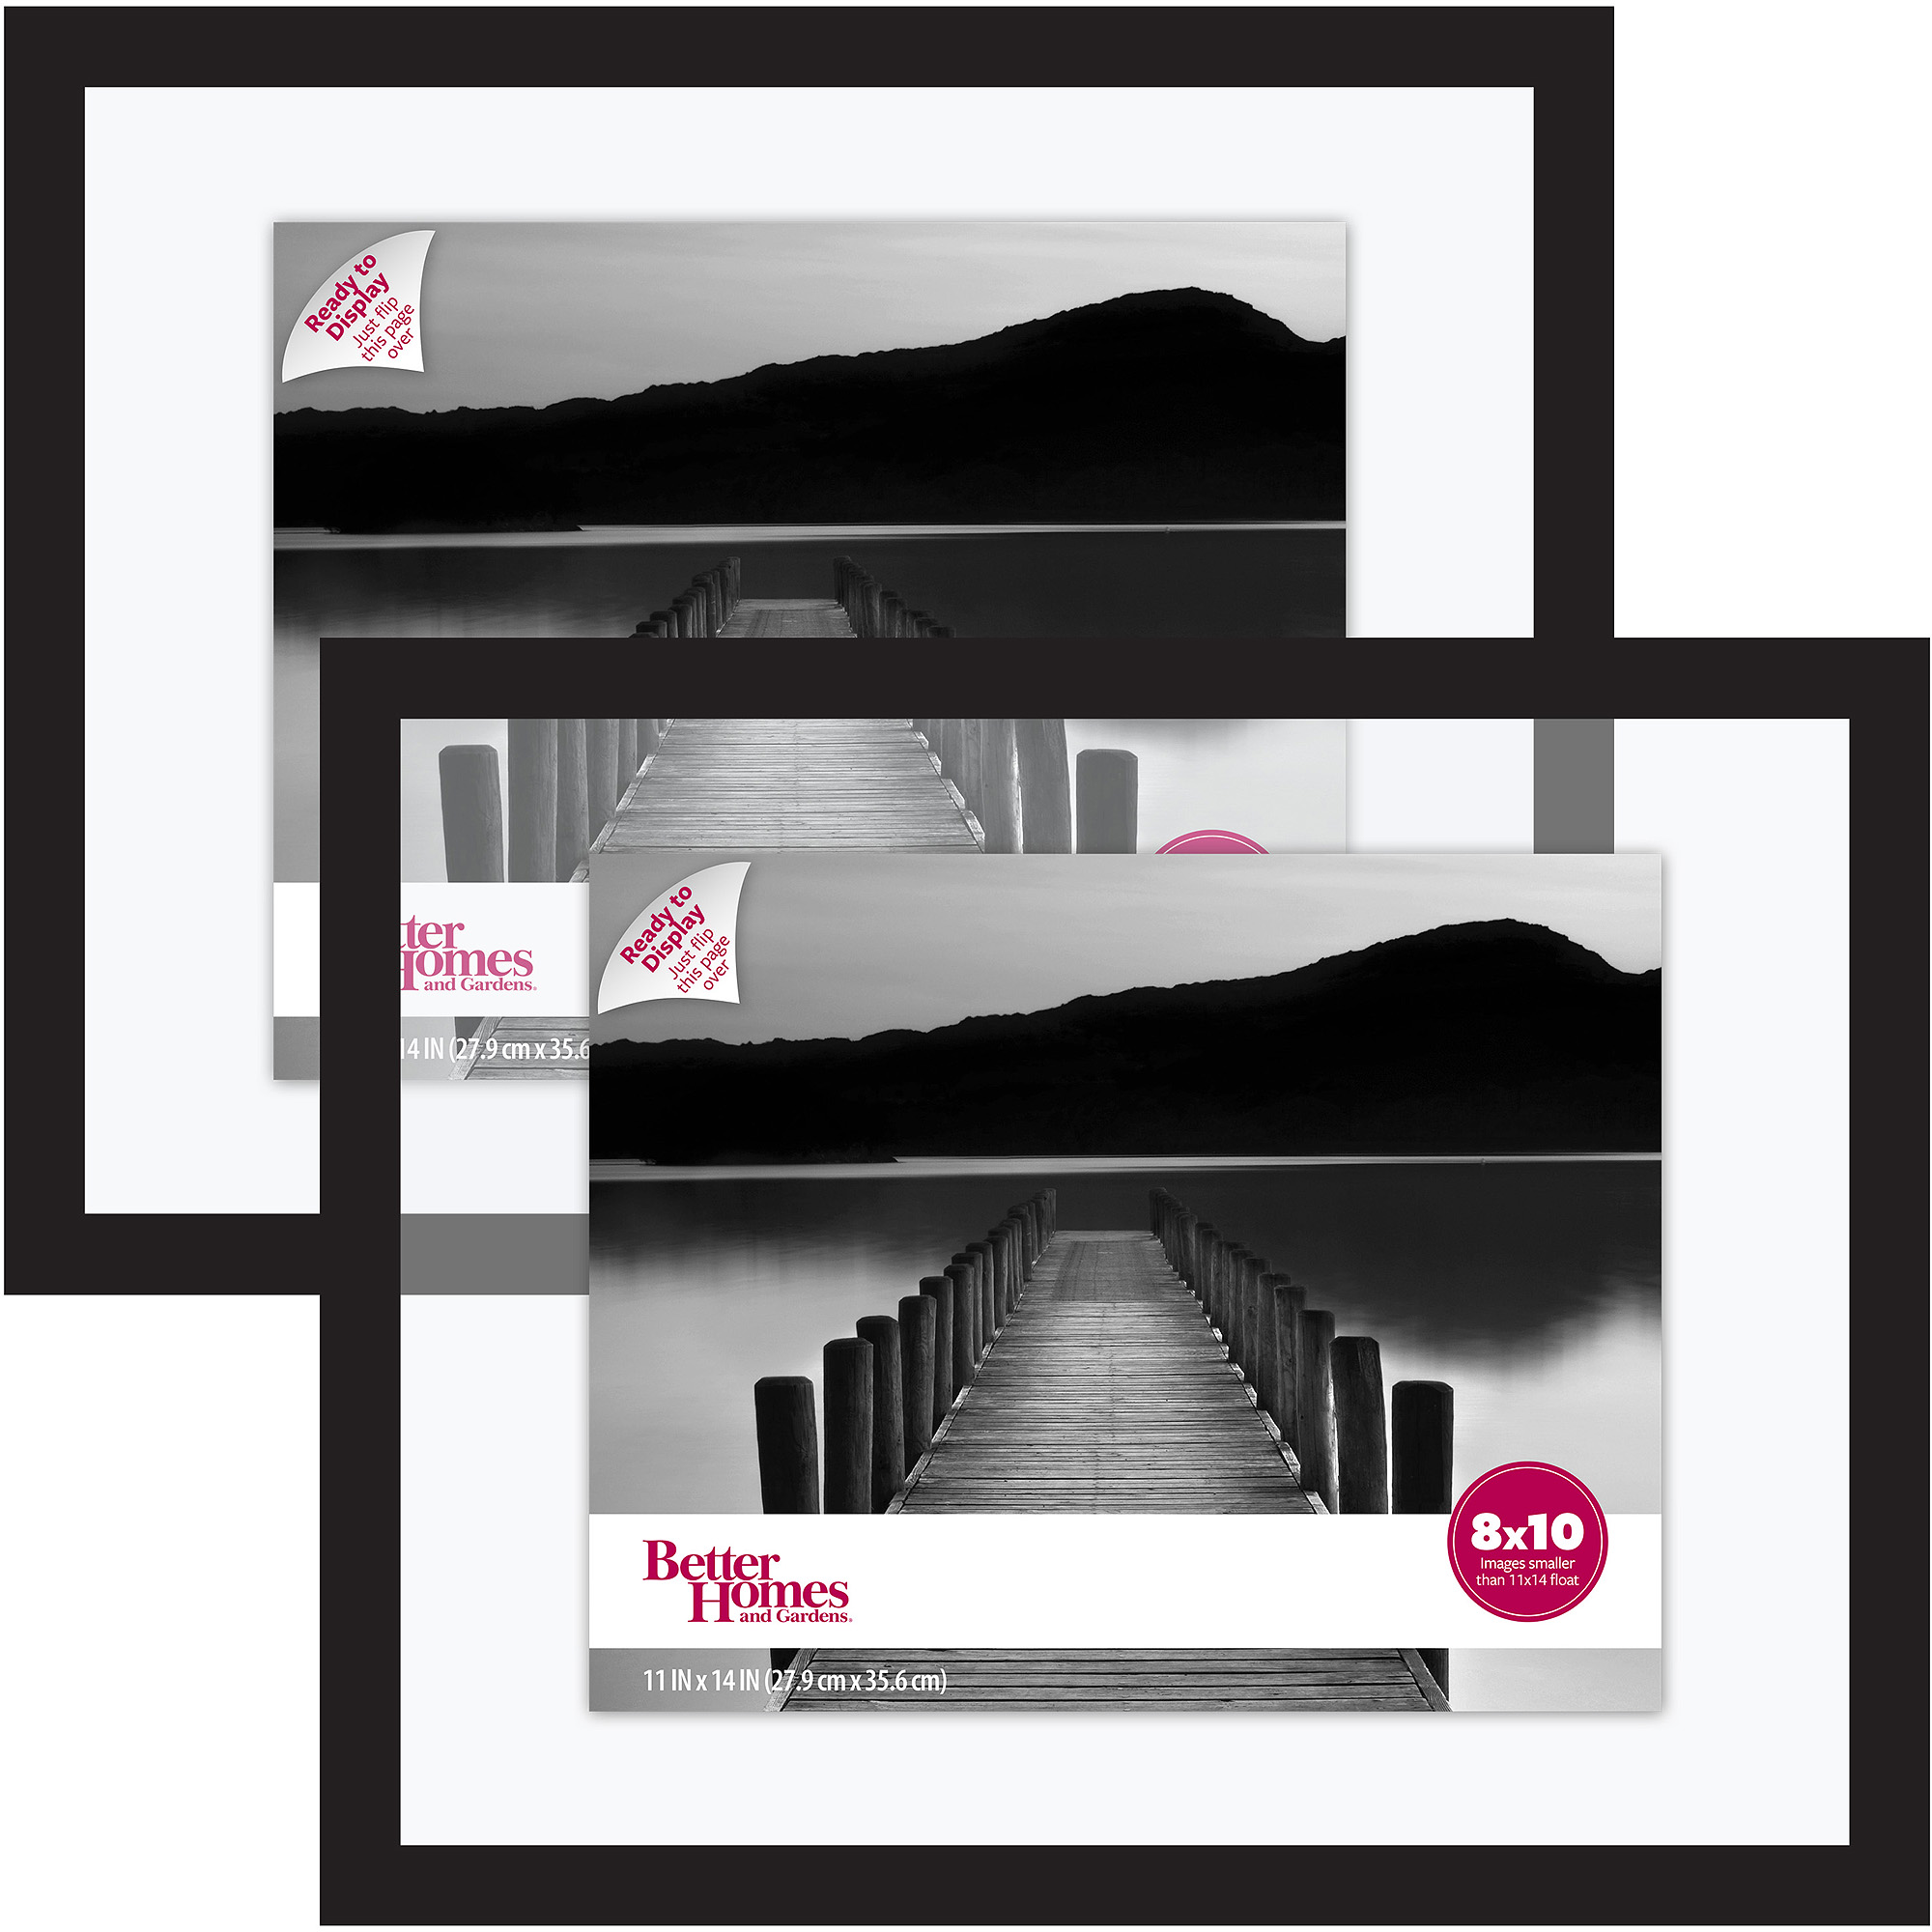 Better homes and gardens float picture frame black set of 2 better homes and gardens float picture frame black set of 2 walmart jeuxipadfo Choice Image